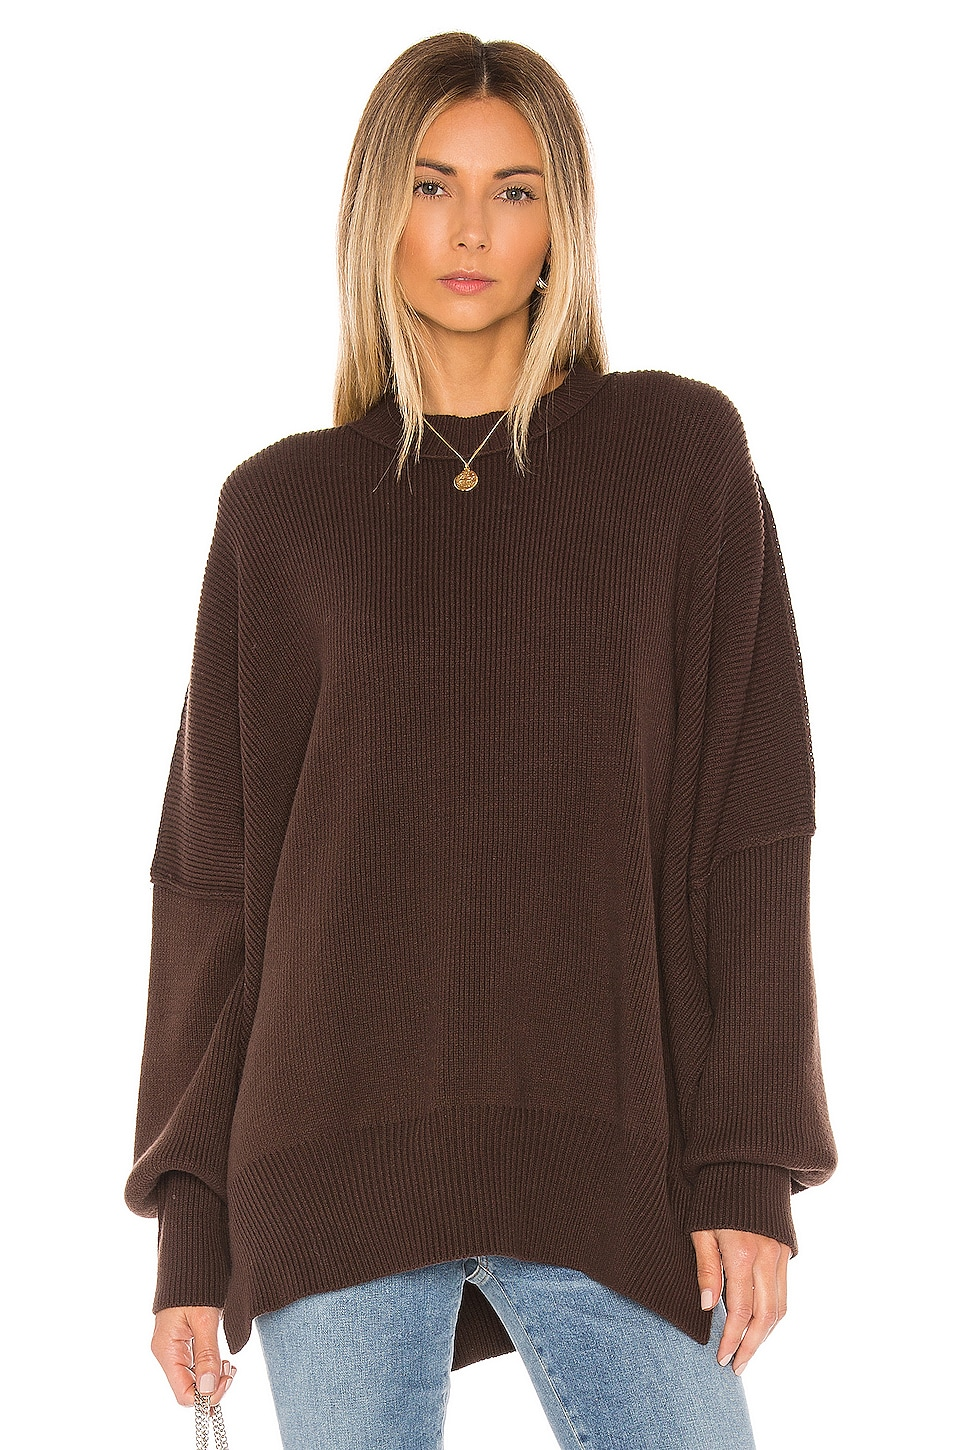 Free People Easy Street Tunic in Chocolate